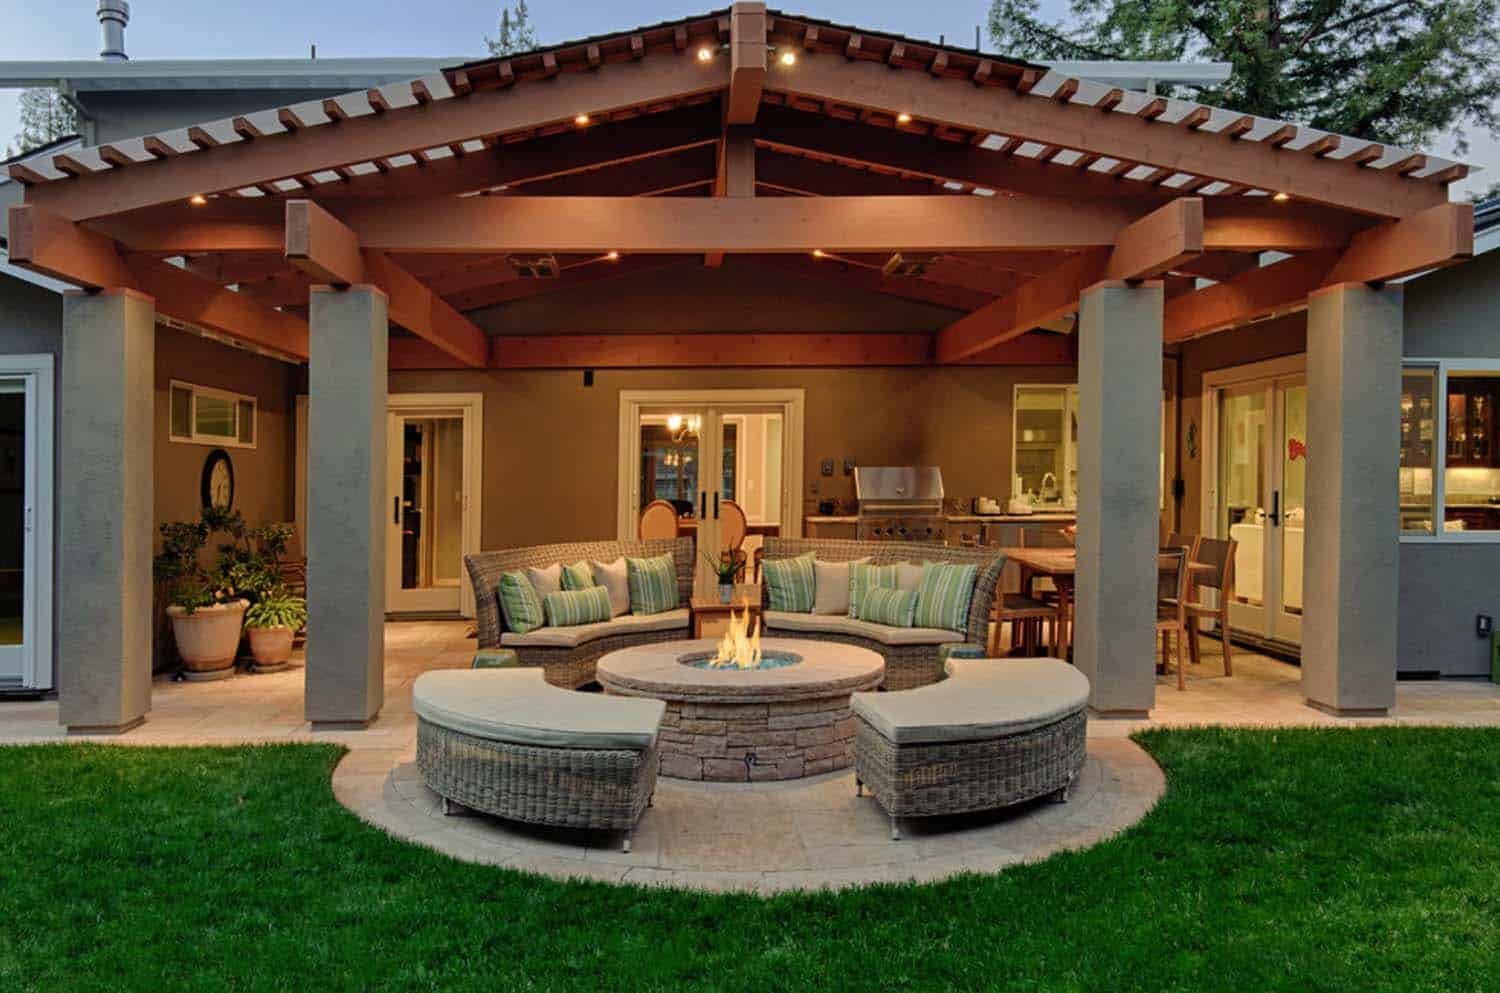 Traditional Outdoor Patio Designs-16-1 Kindesign